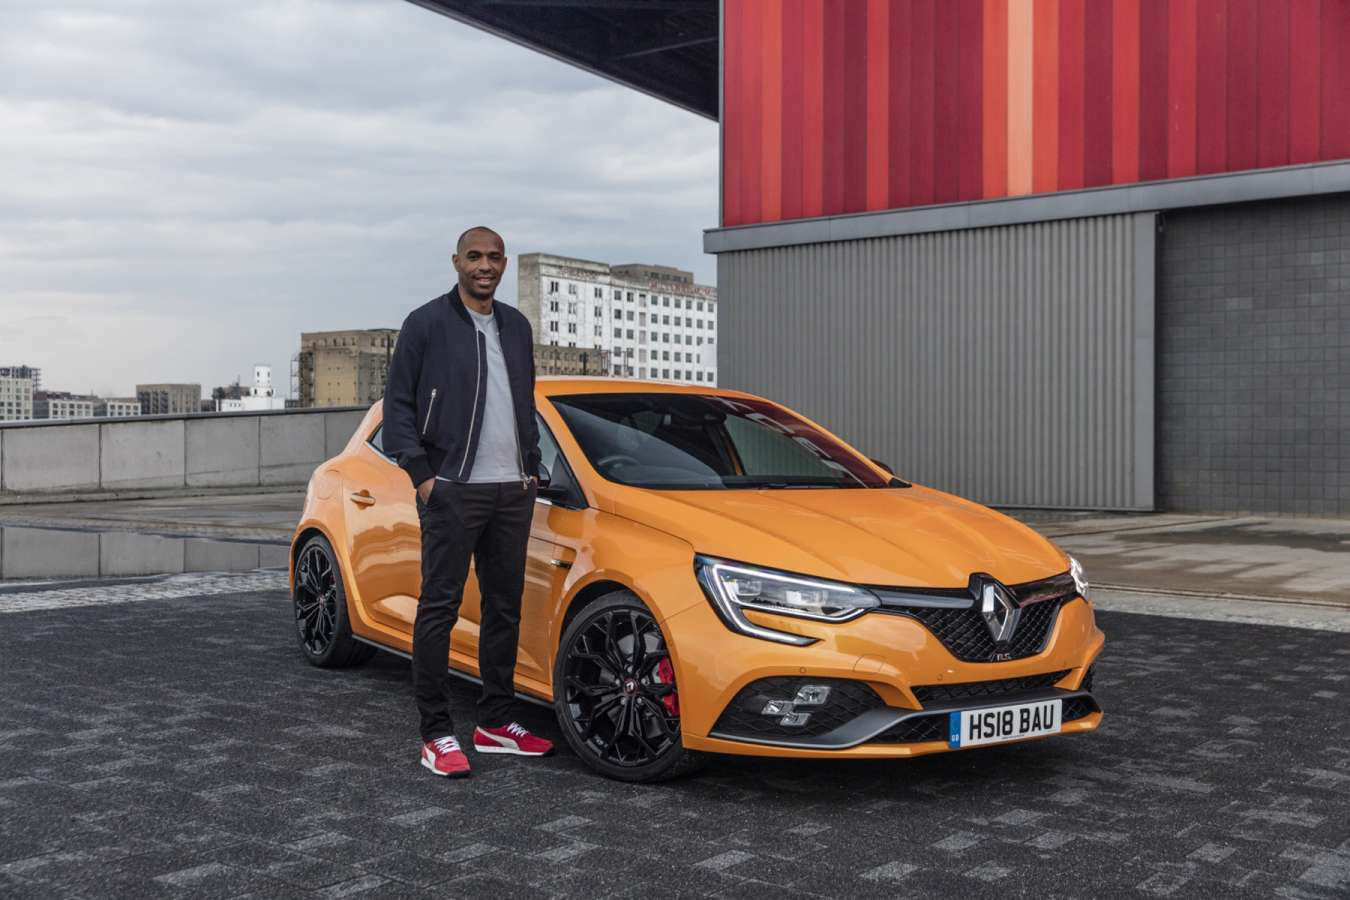 Thierry Henry devient ambassadeur anglais Renault en Angletterre UK1 - Thierry Henry devient ambassadeur anglais Renault en Angletterre UK